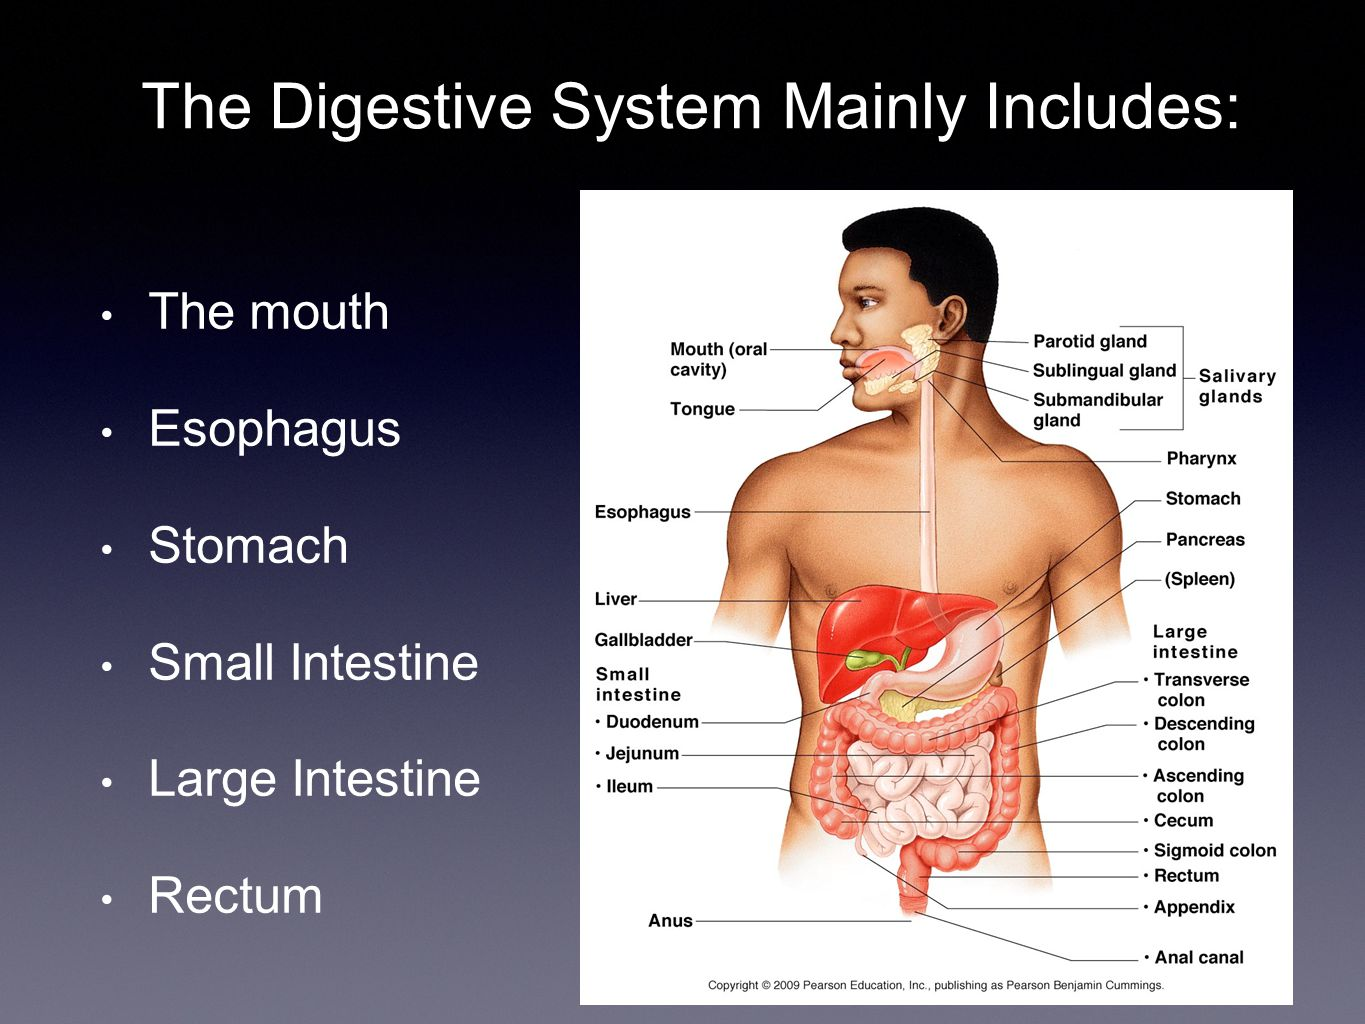 The Digestive System Mainly Includes: